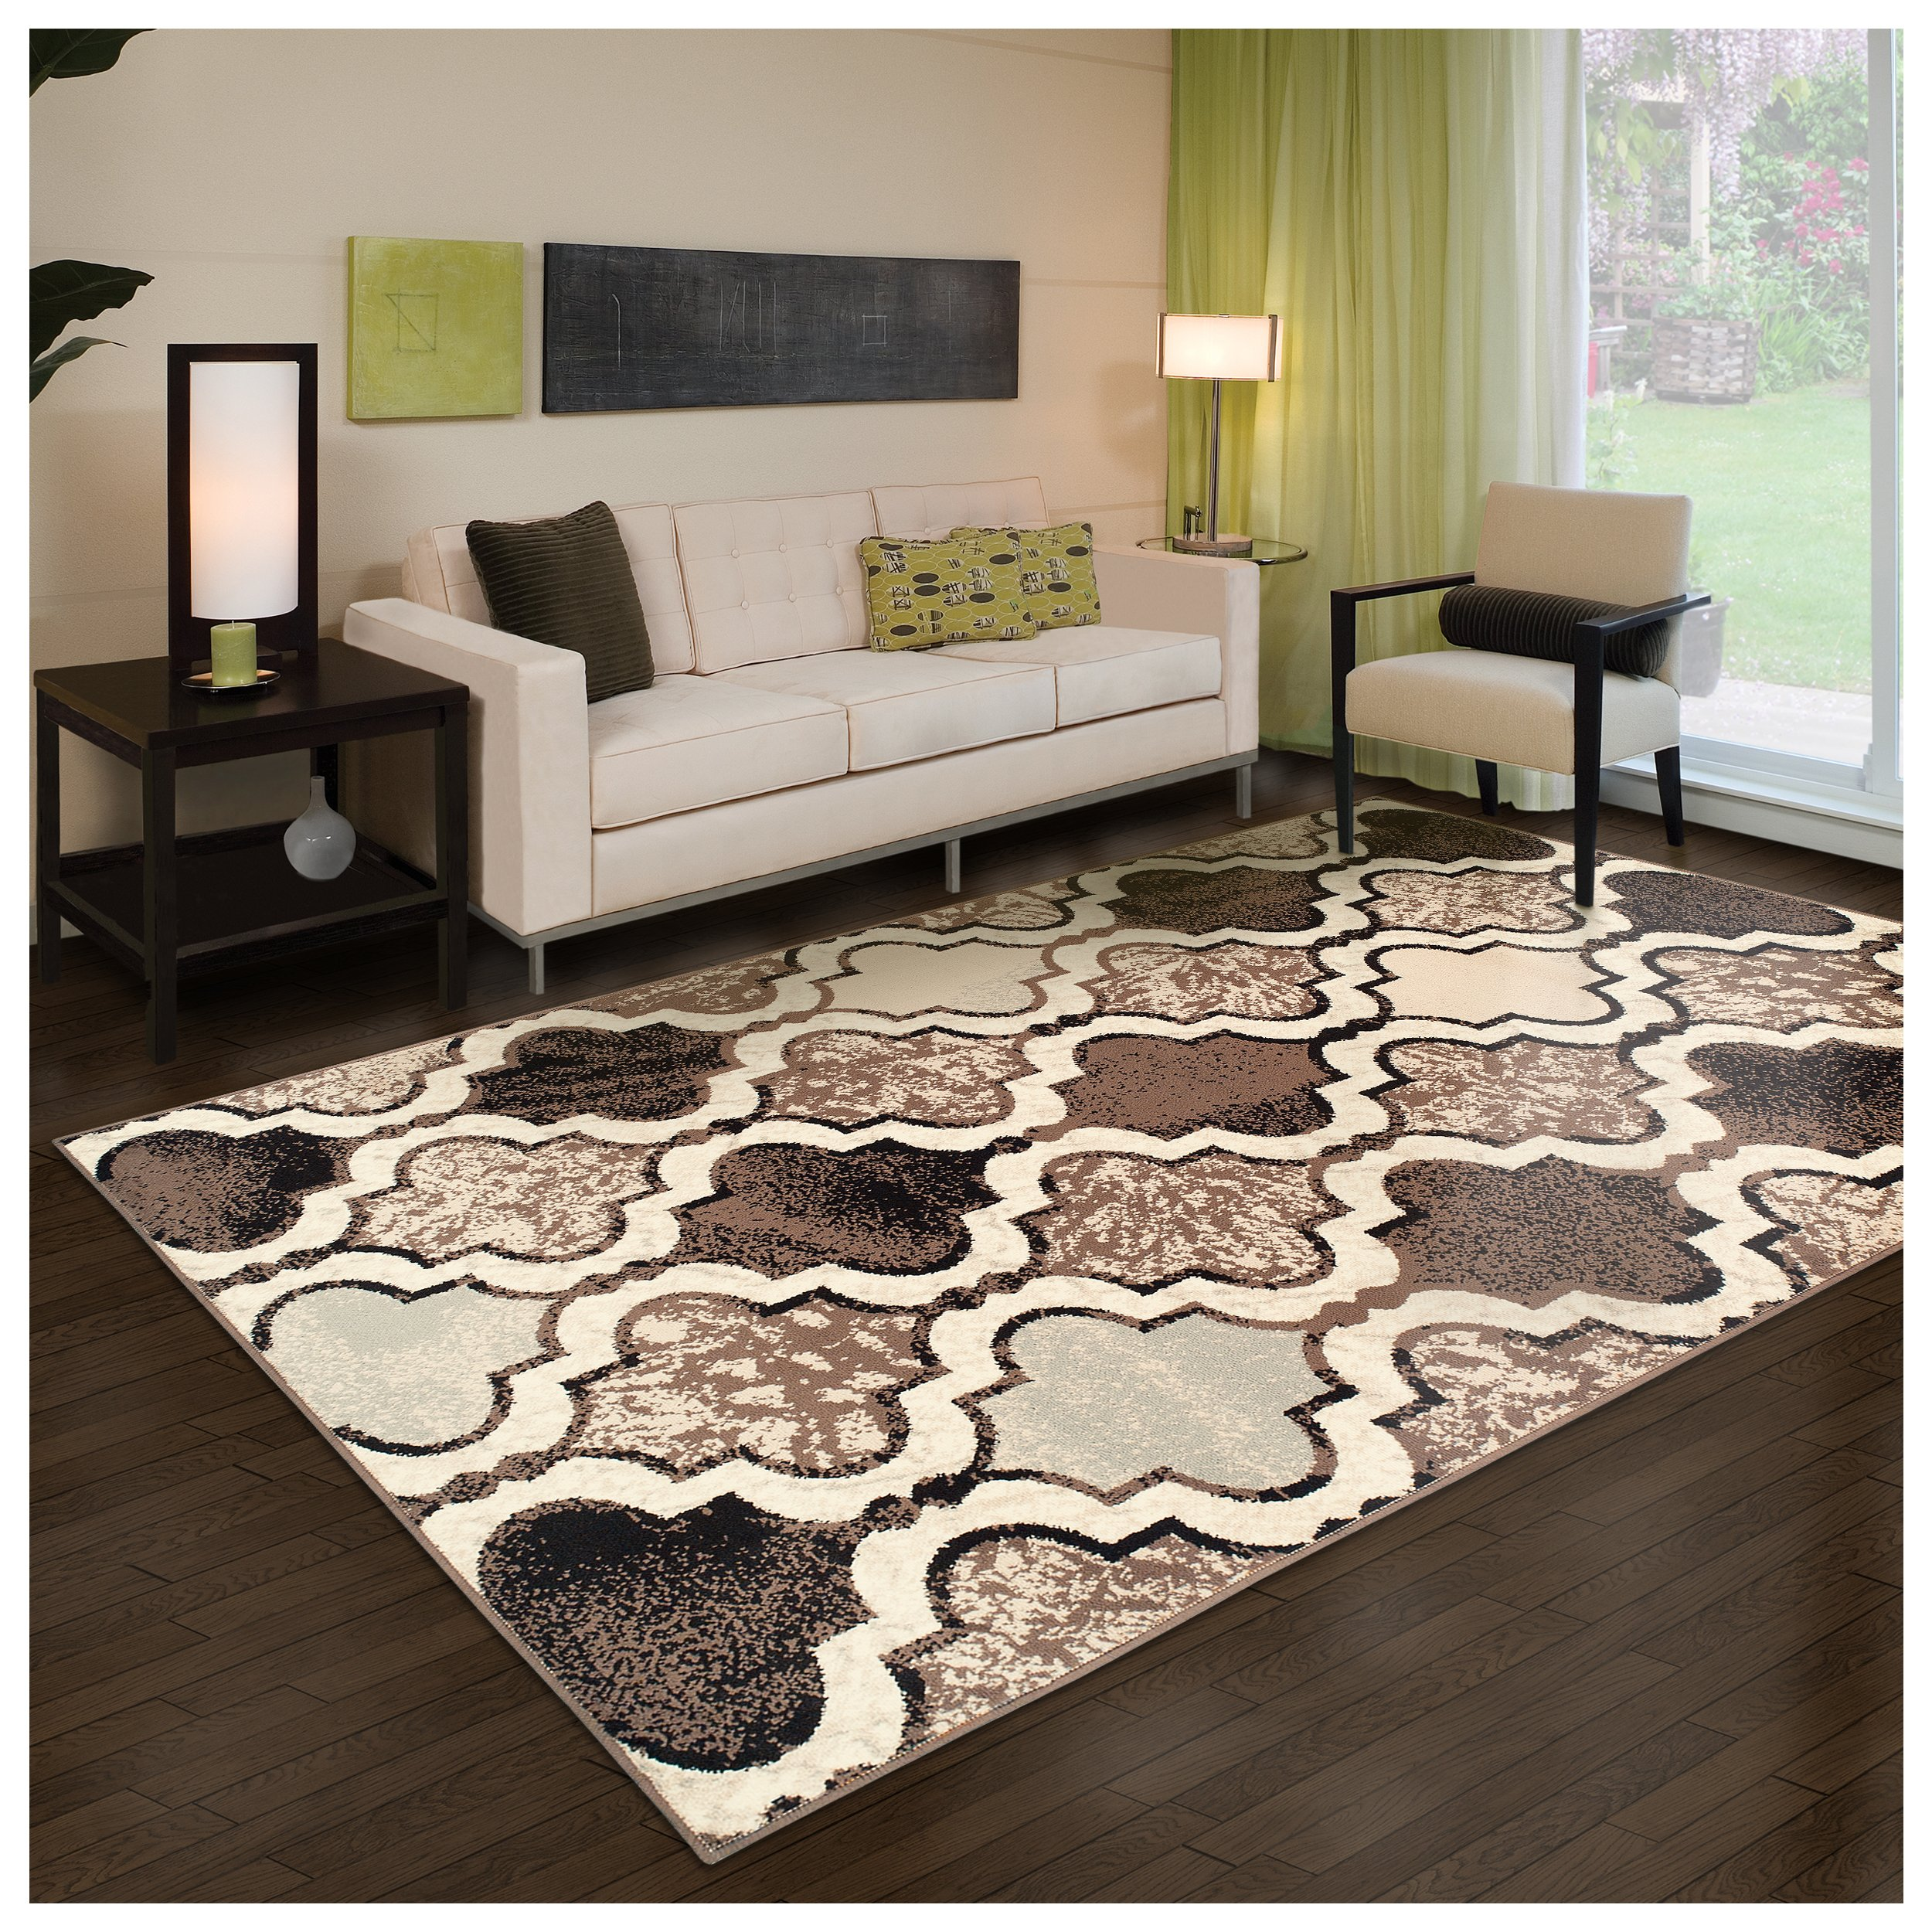 Superior Modern Viking Collection Area Rug 8mm Pile